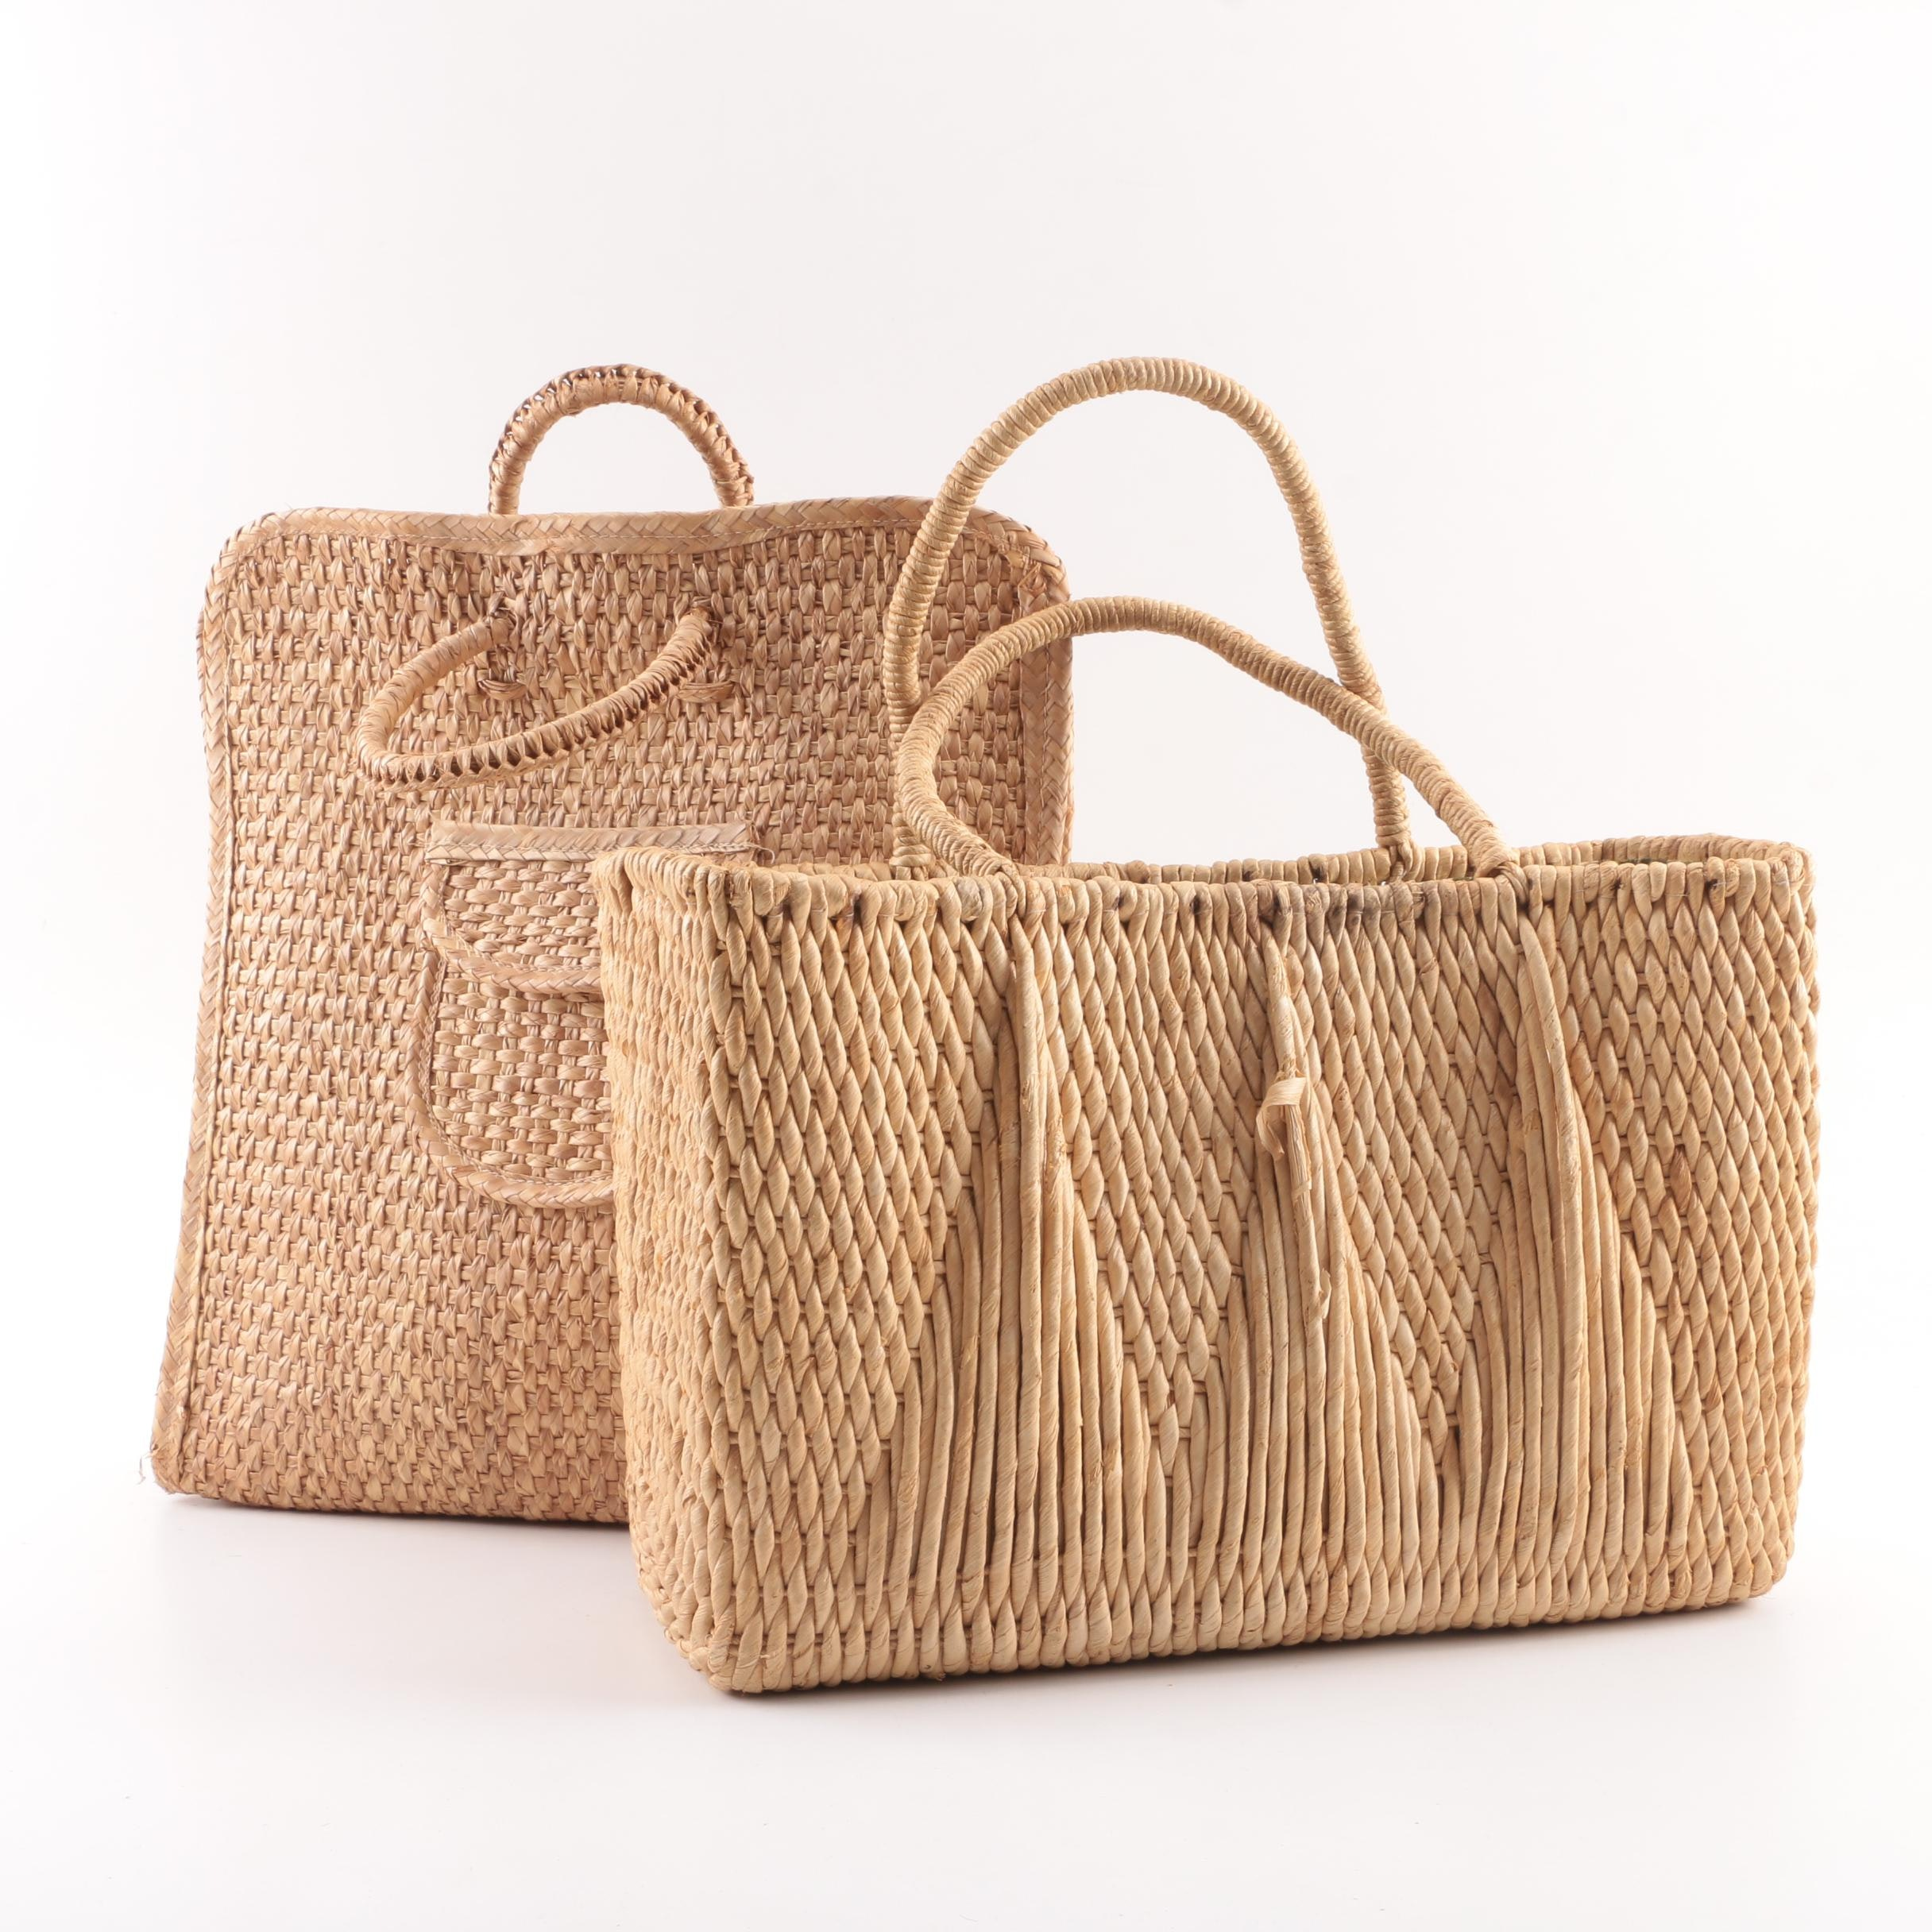 Vintage Woven Straw Tote Bags